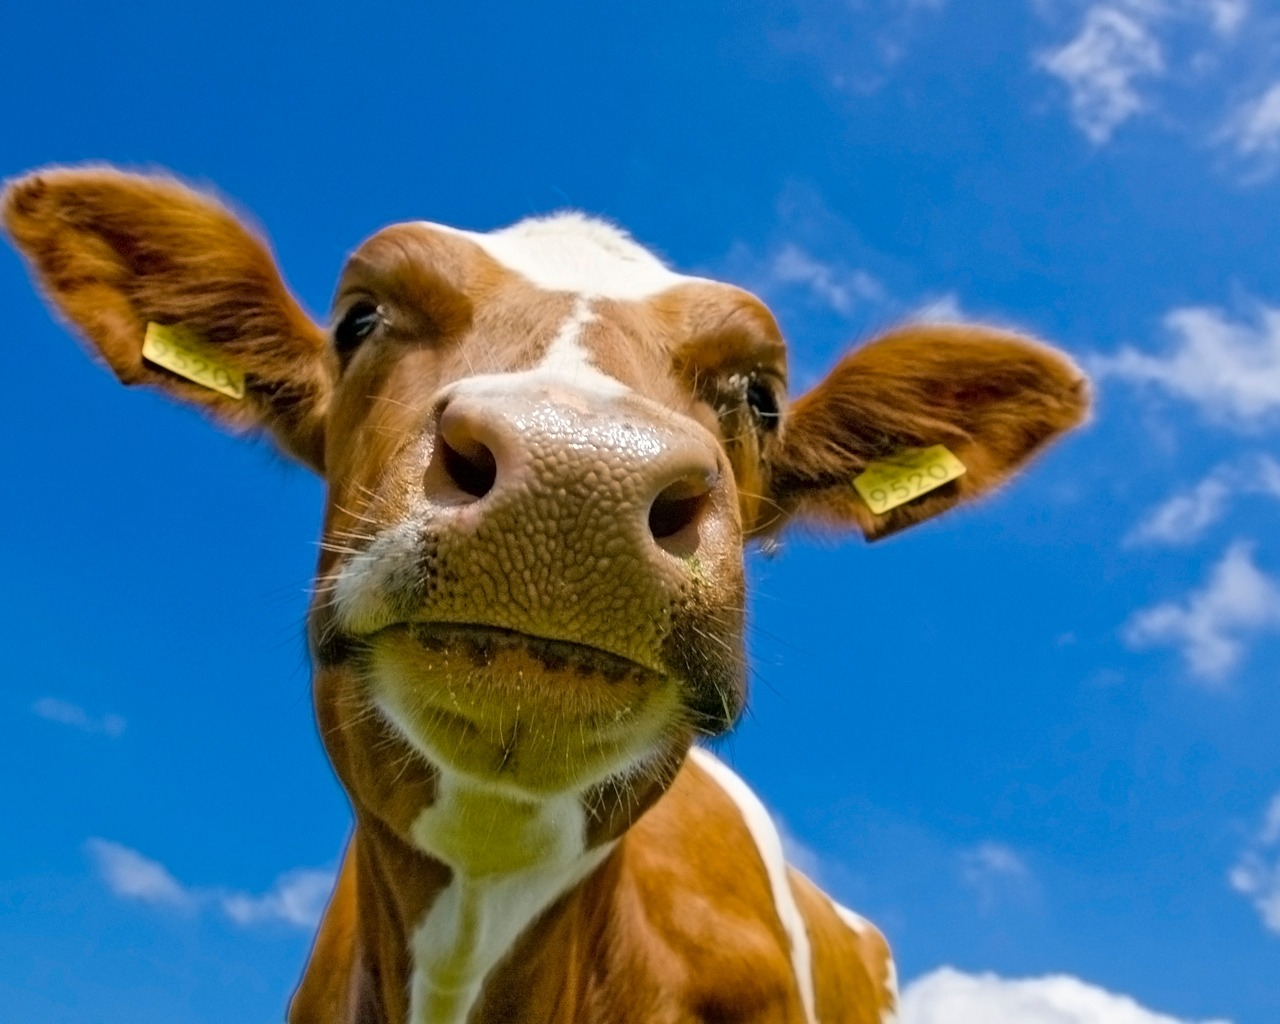 Cow Wallpaper Cows Animals Wallpapers in jpg format for free download